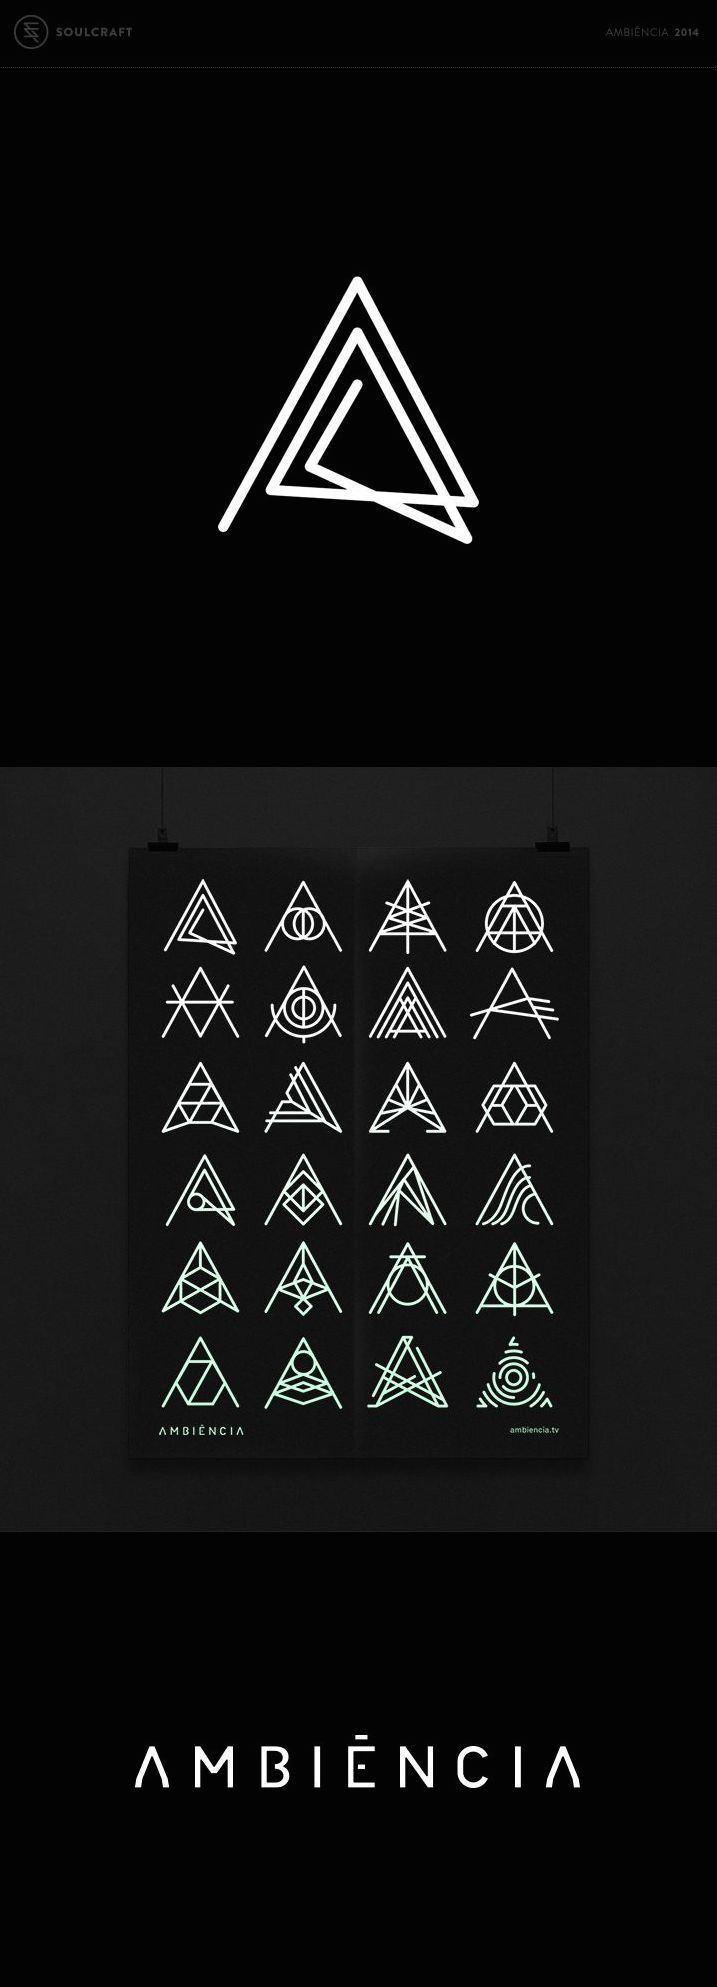 A ---- Ambiencia / Click on the enlarged image to see an animation of the symbols: